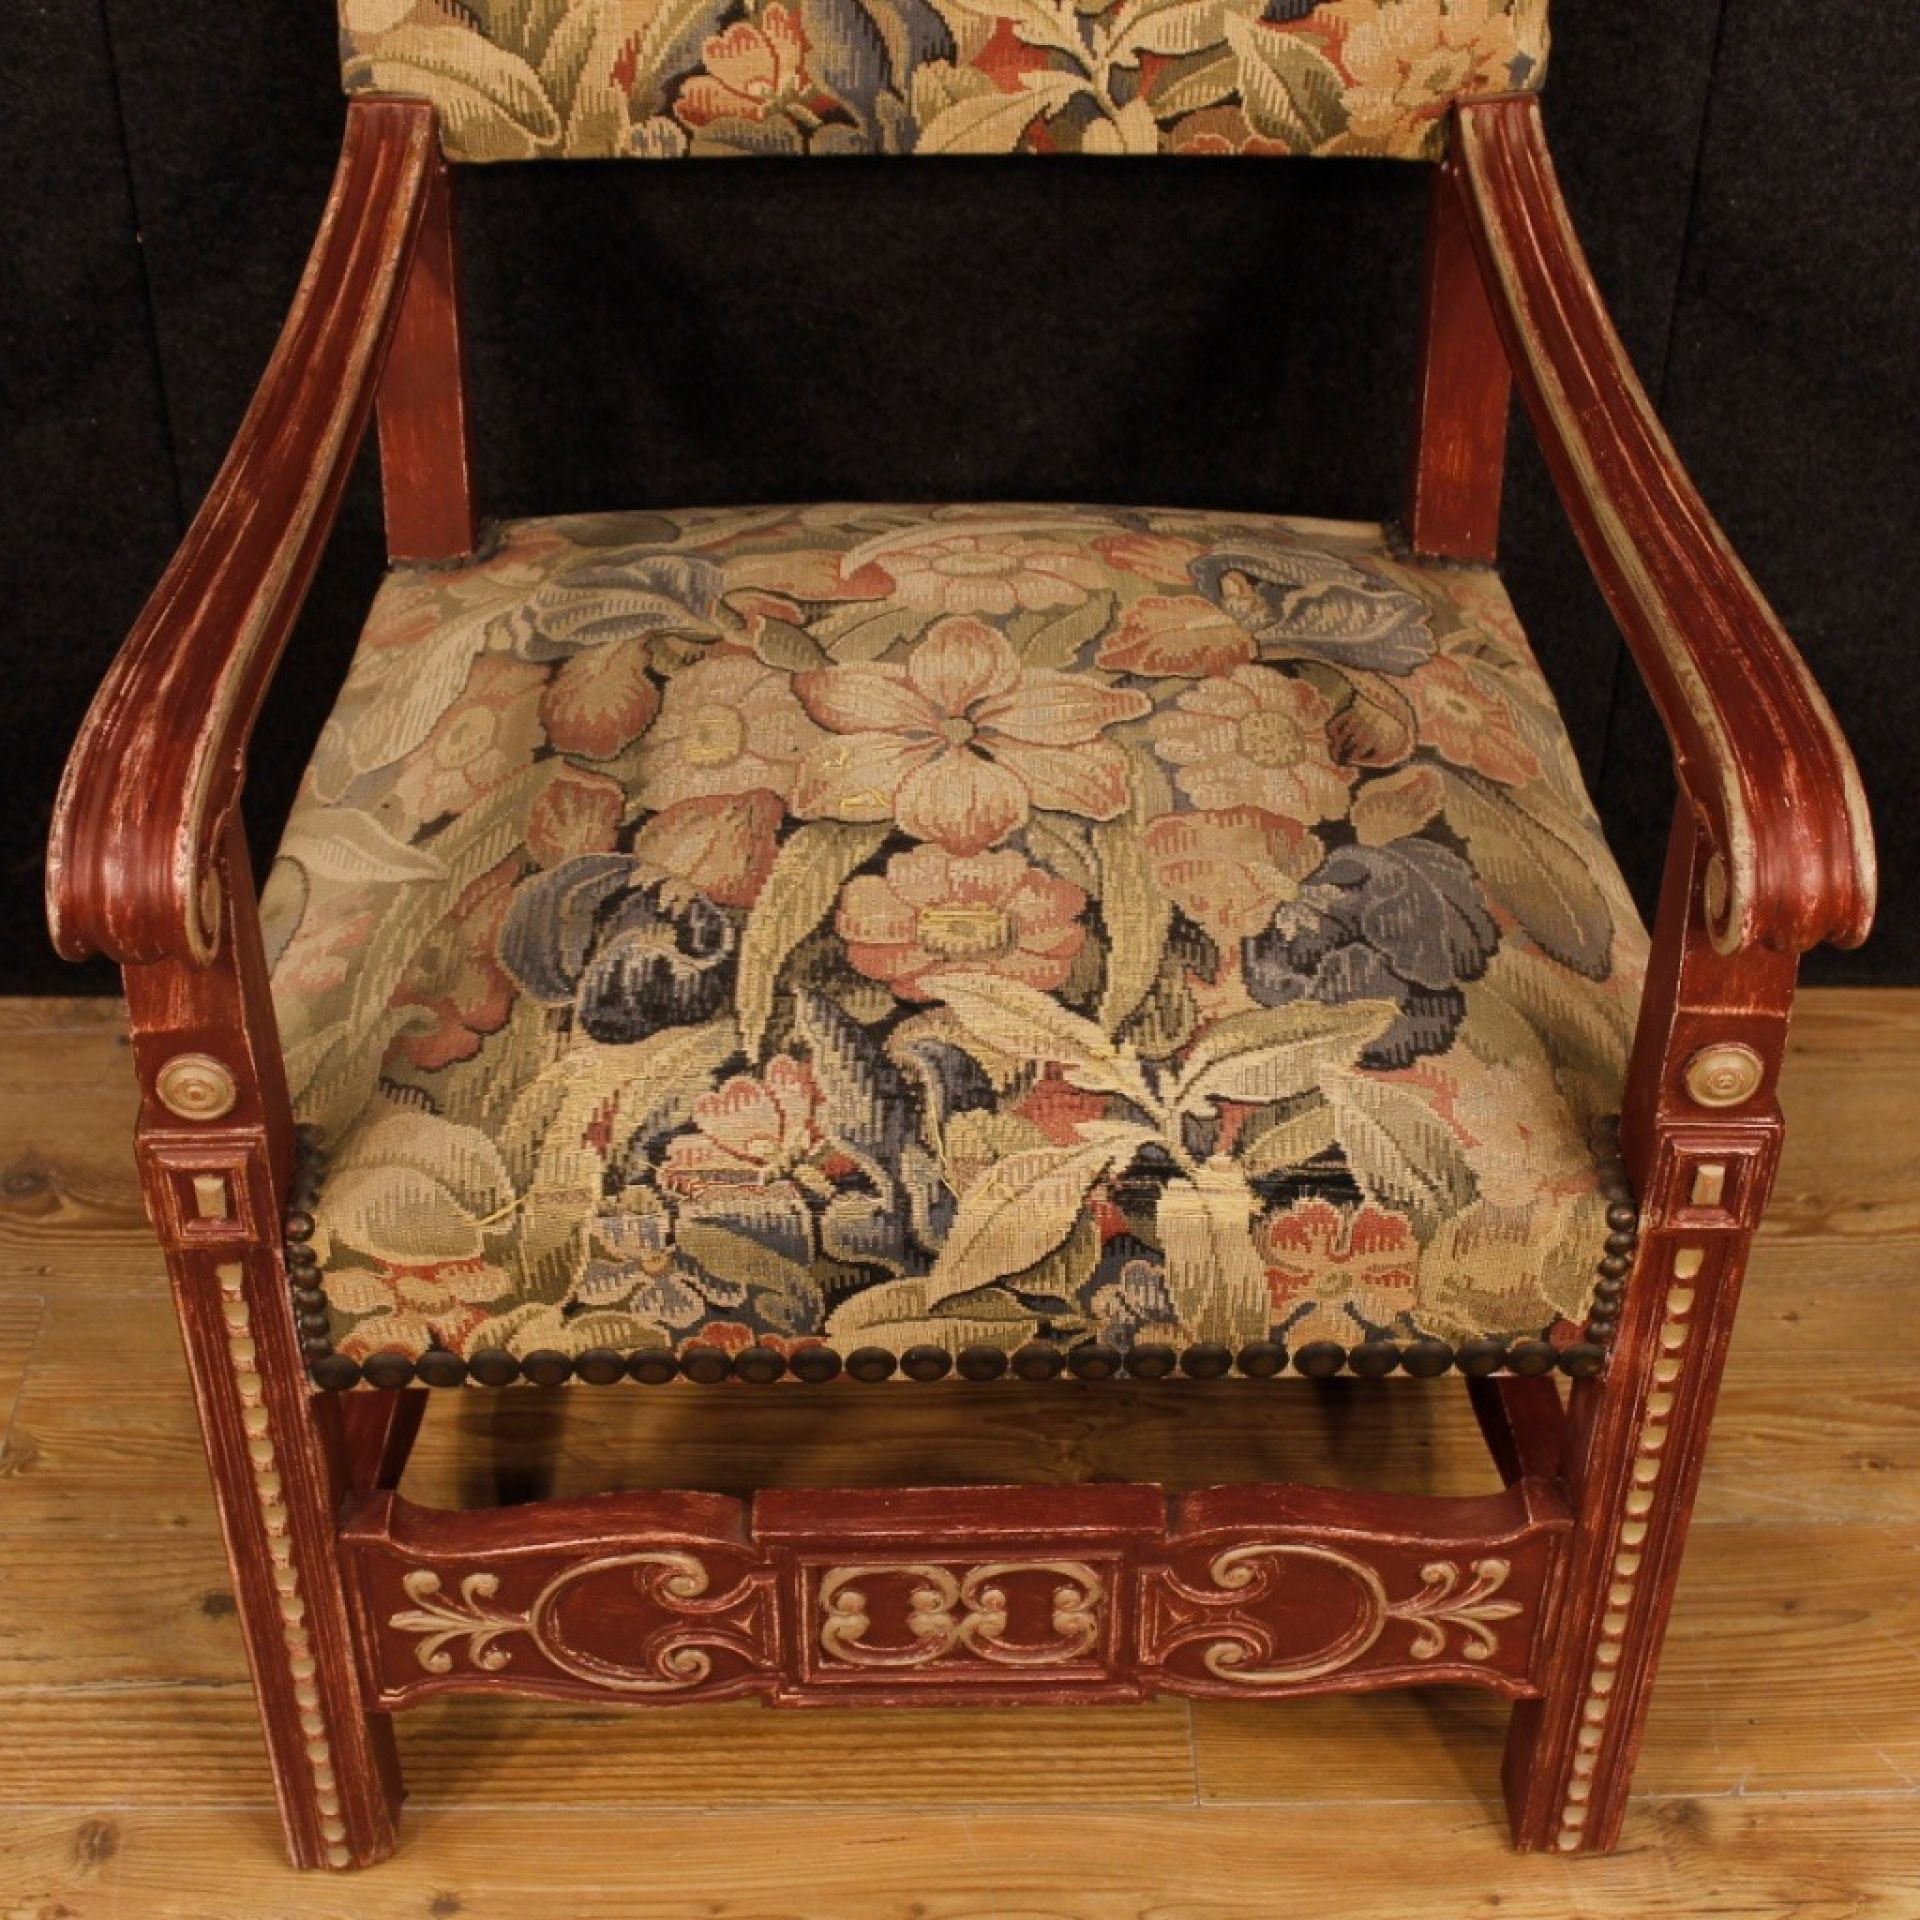 Pair Of French Armchairs In Painted Wood With Floral Fabric From 20th Century